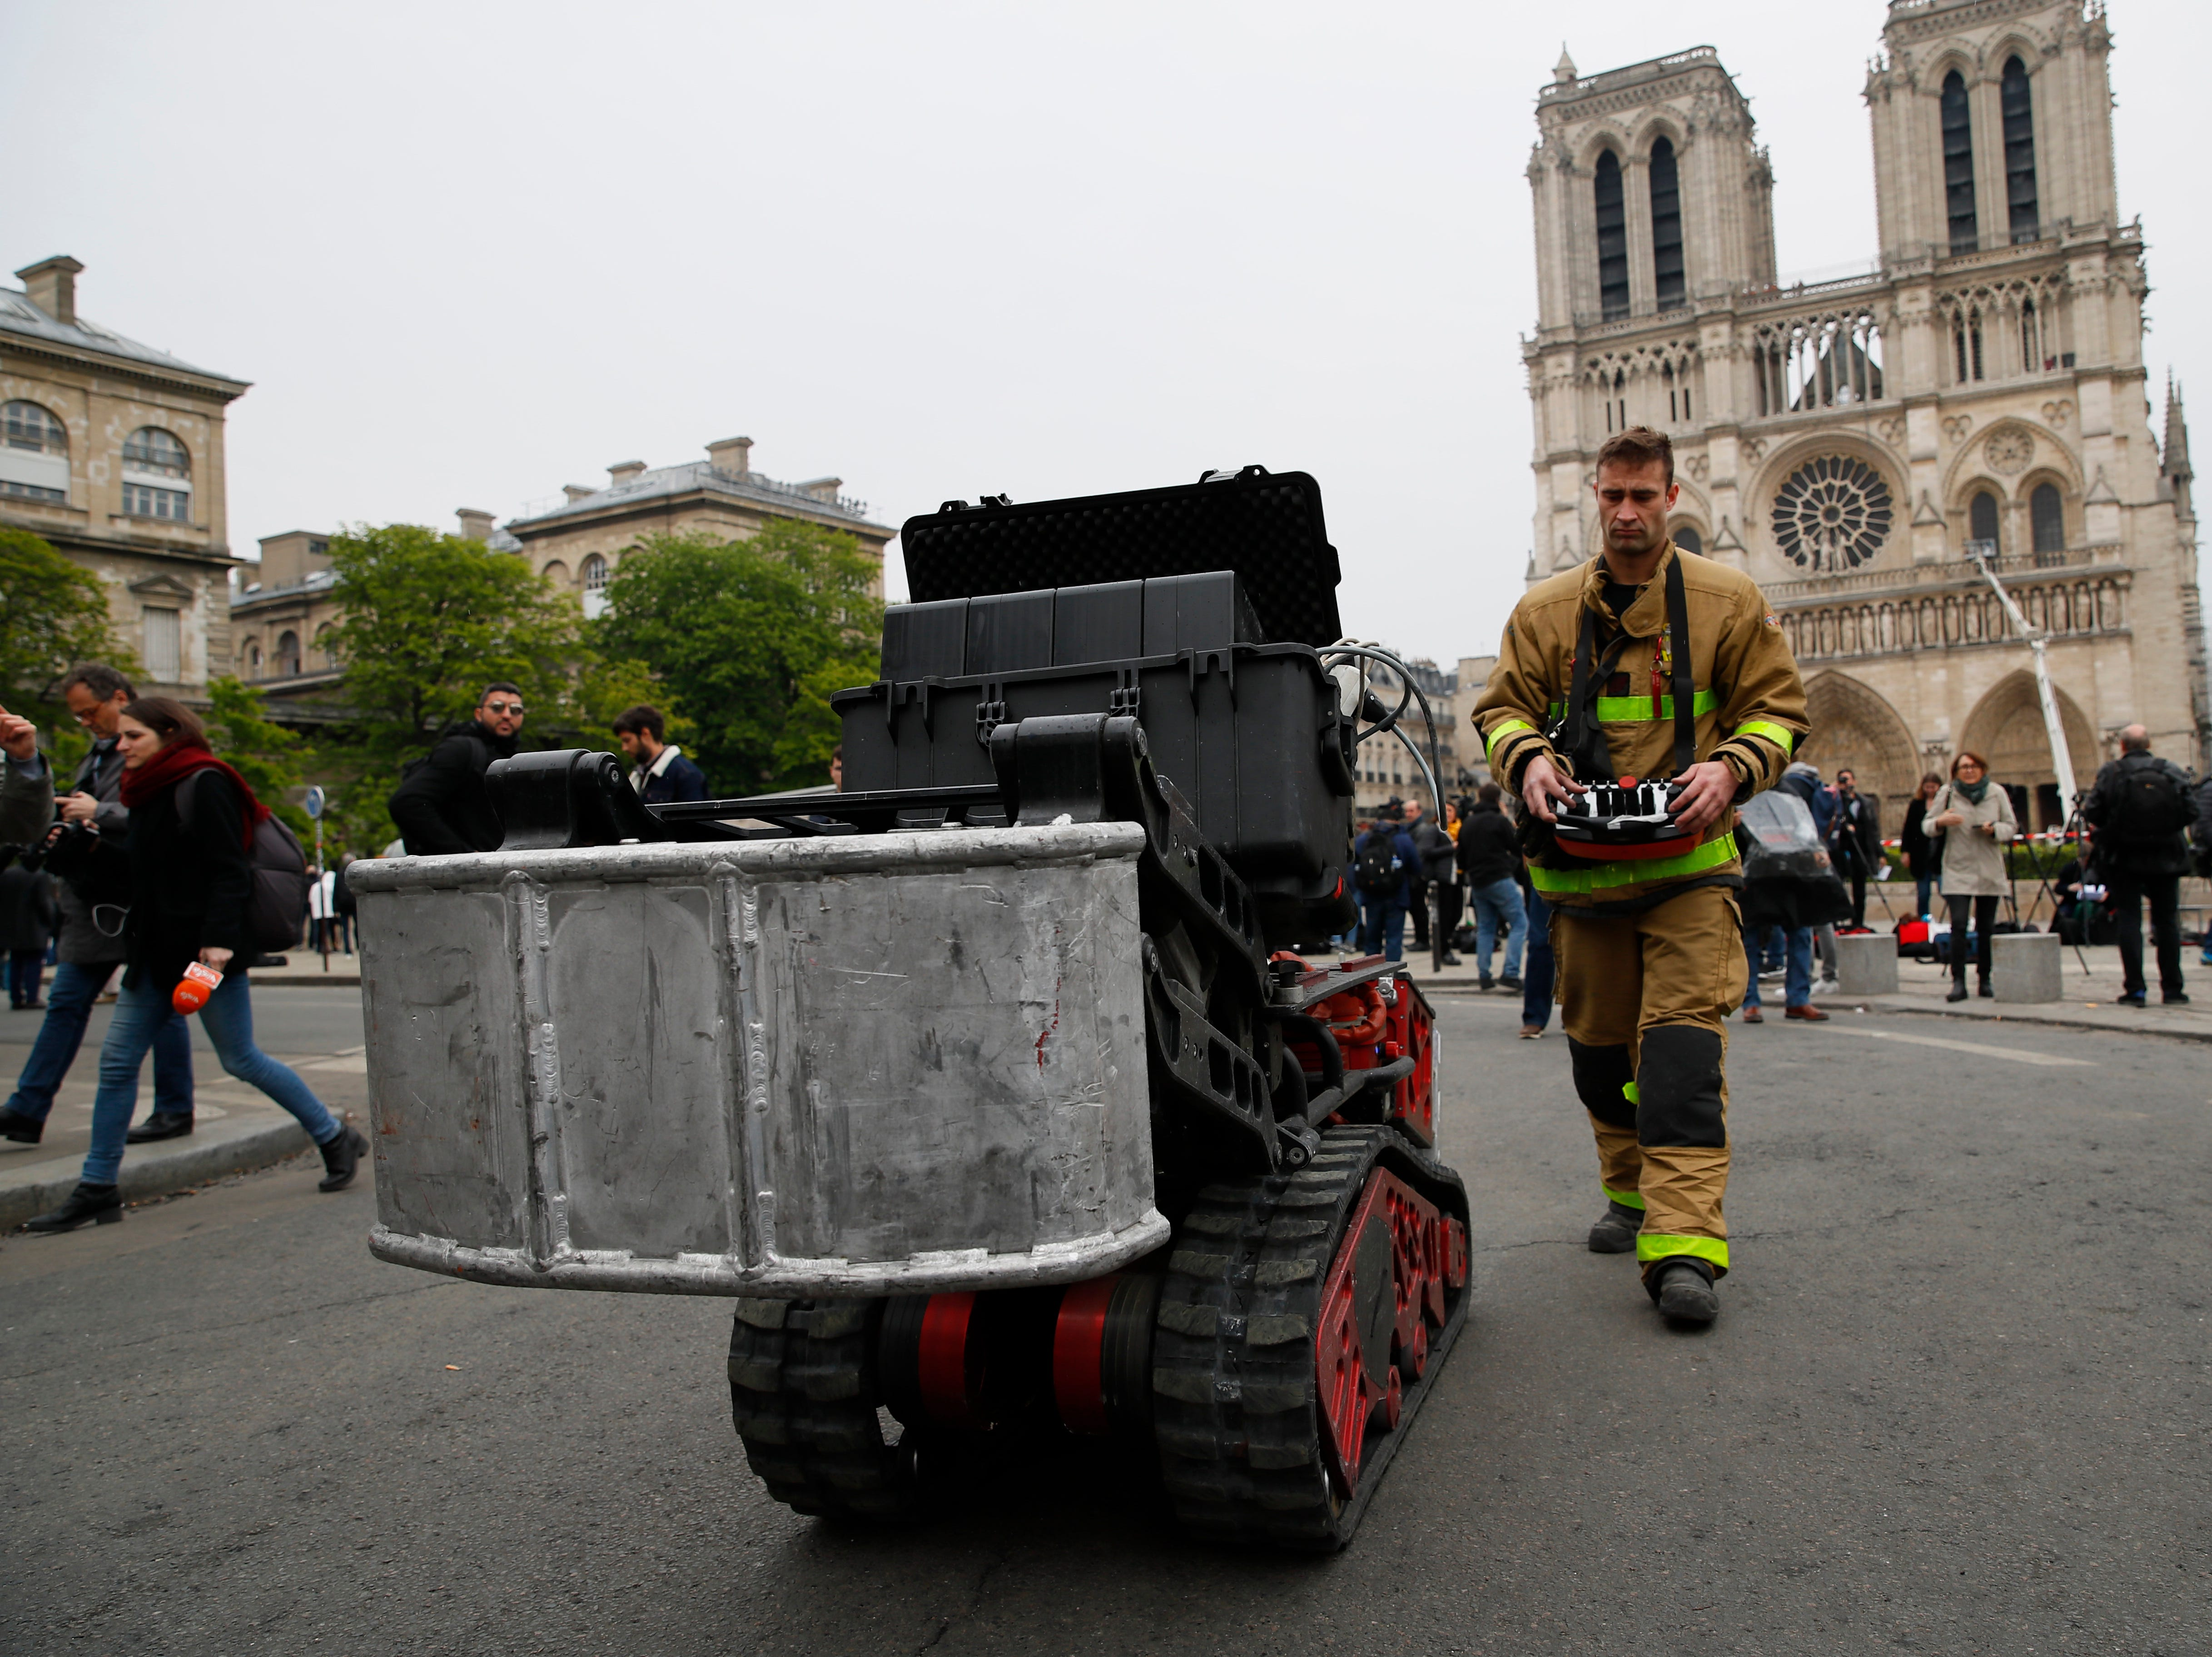 A firefighter operates a machine by remote control outside Notre Dame cathedral Tuesday April 16, 2019 in Paris. Experts assessed the blackened shell of Paris' iconic Notre Dame Tuesday morning to establish next steps to save what remains after a devastating fire destroyed much of the cathedral that had survived almost 900 years of history. (AP Photo/Francois Mori)